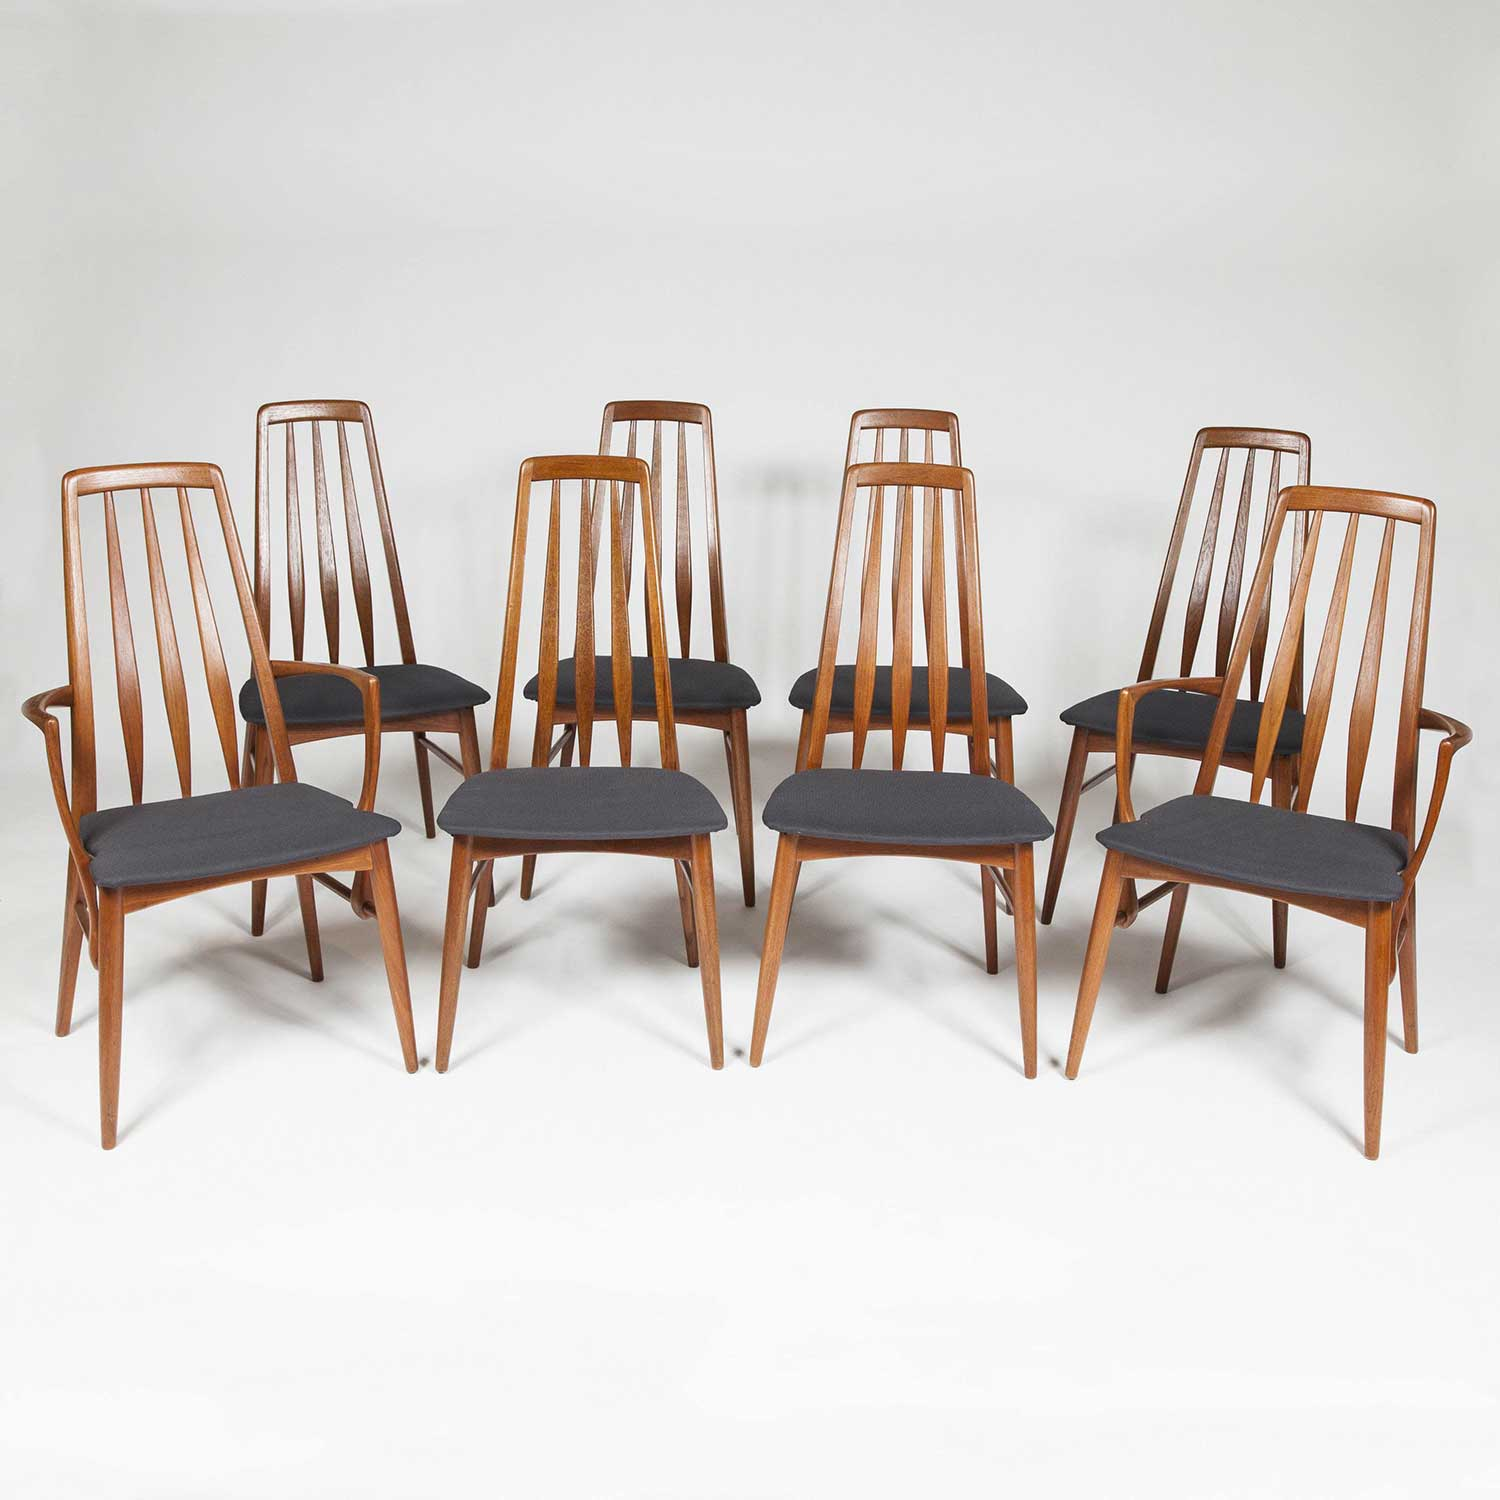 8 EVA CHAIRS BY NEILS KOEFOED